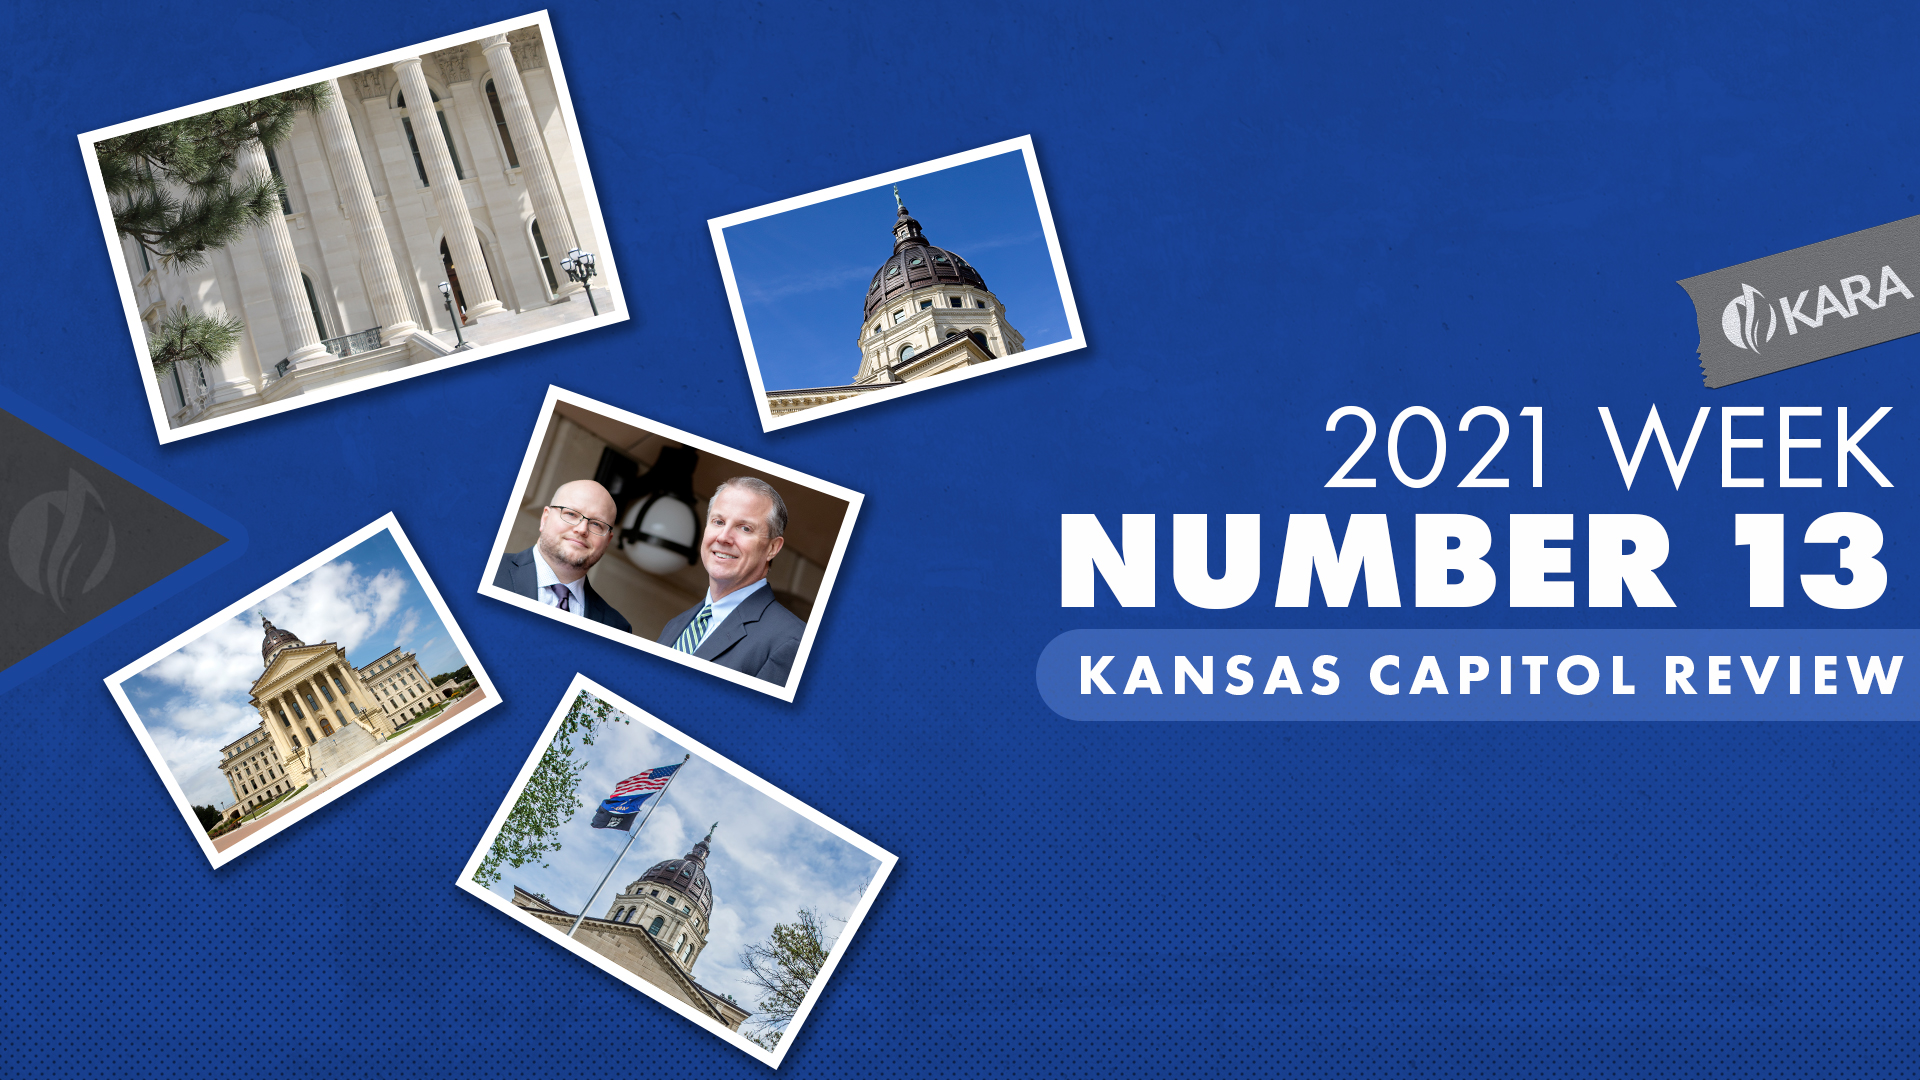 2021 Kansas Capitol Review - Week 13